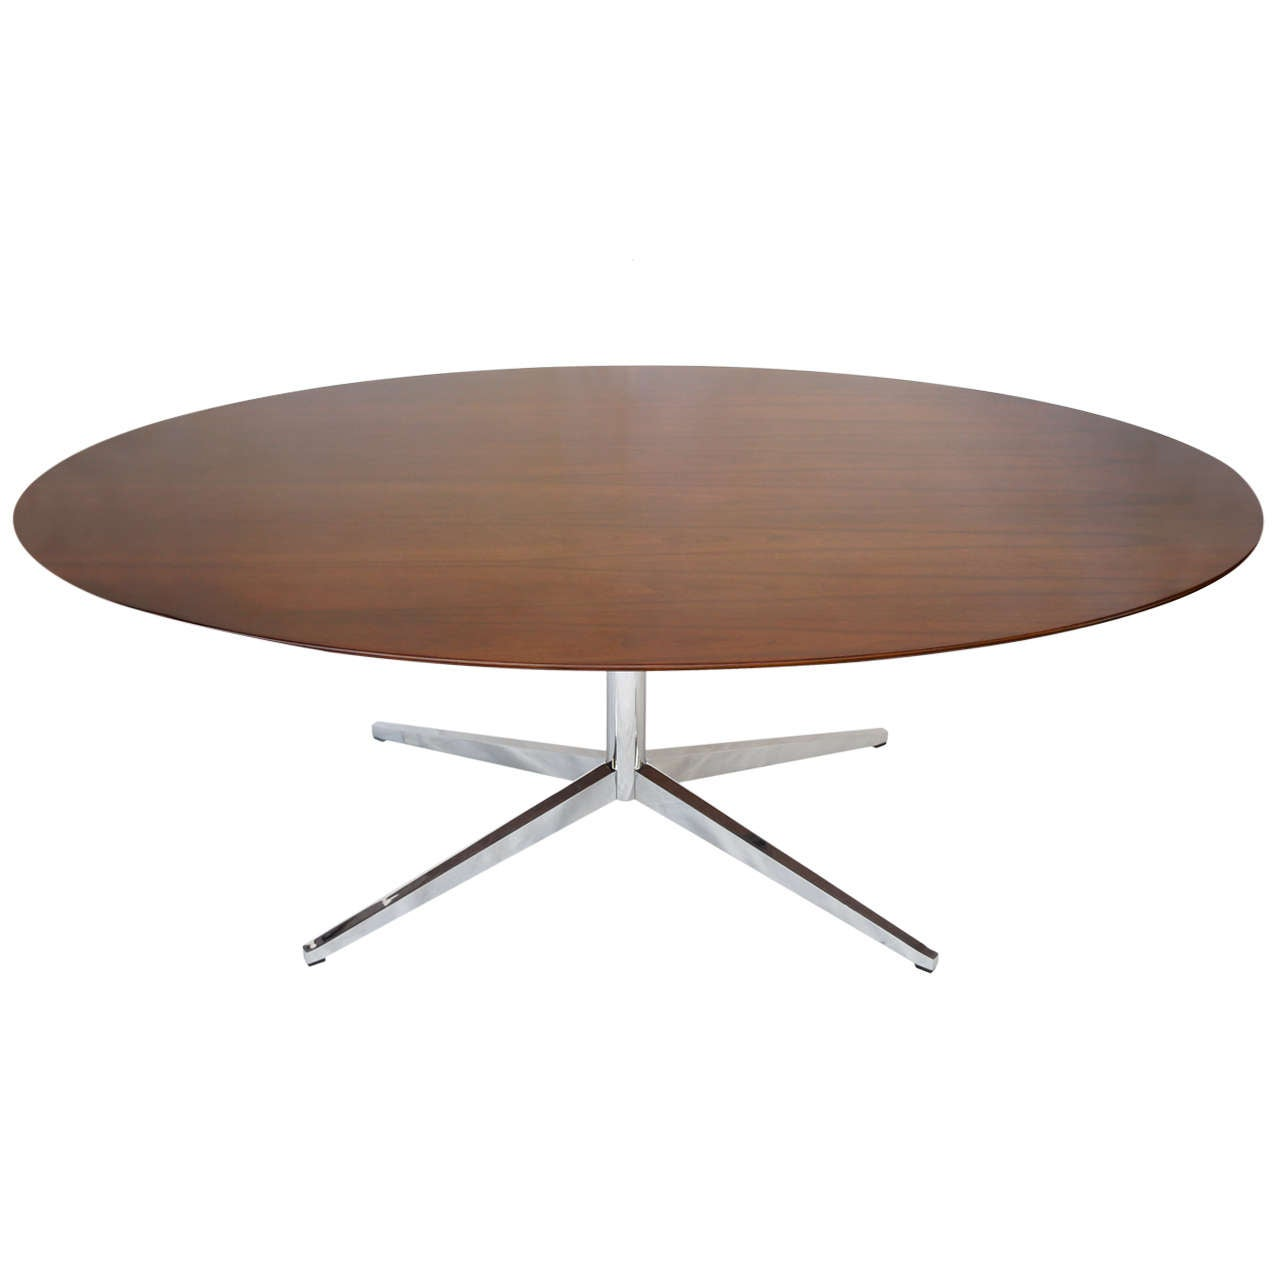 8 foot florence knoll oval dining table desk or conference table in rosewood at 1stdibs. Black Bedroom Furniture Sets. Home Design Ideas